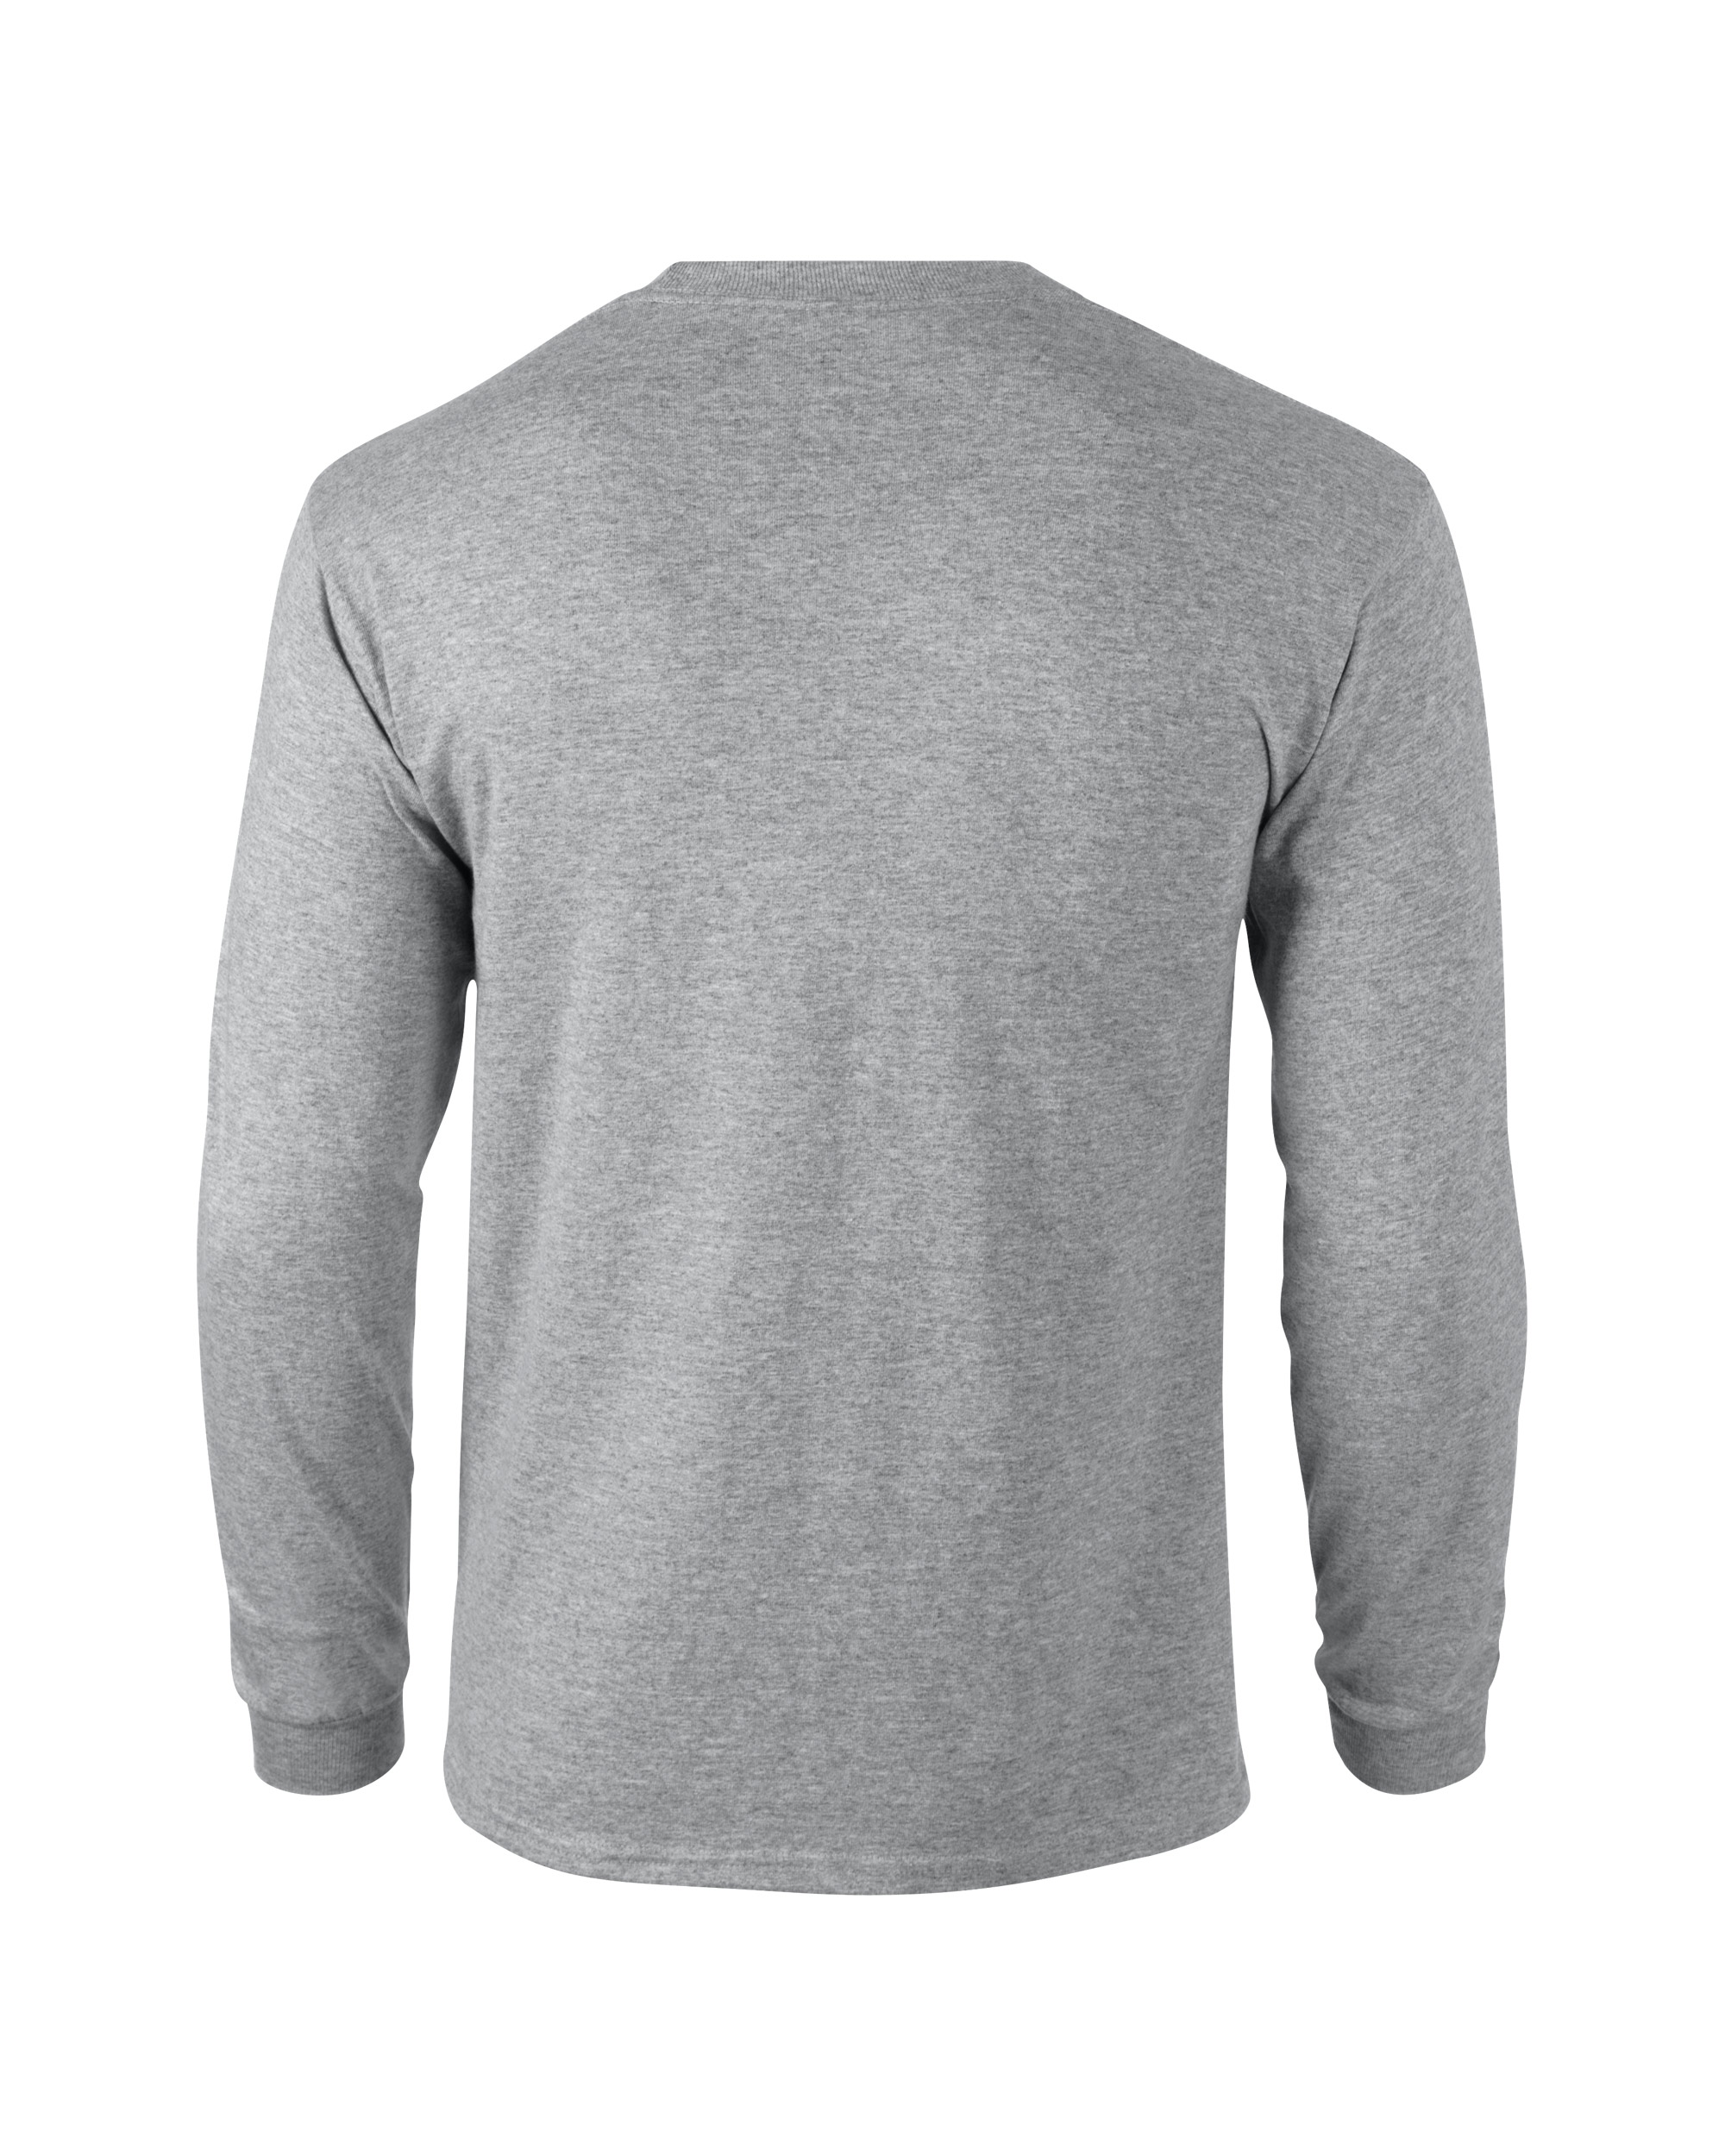 Gildan Adult Unisex Ultra Cotton Long Sleeve T Shirt